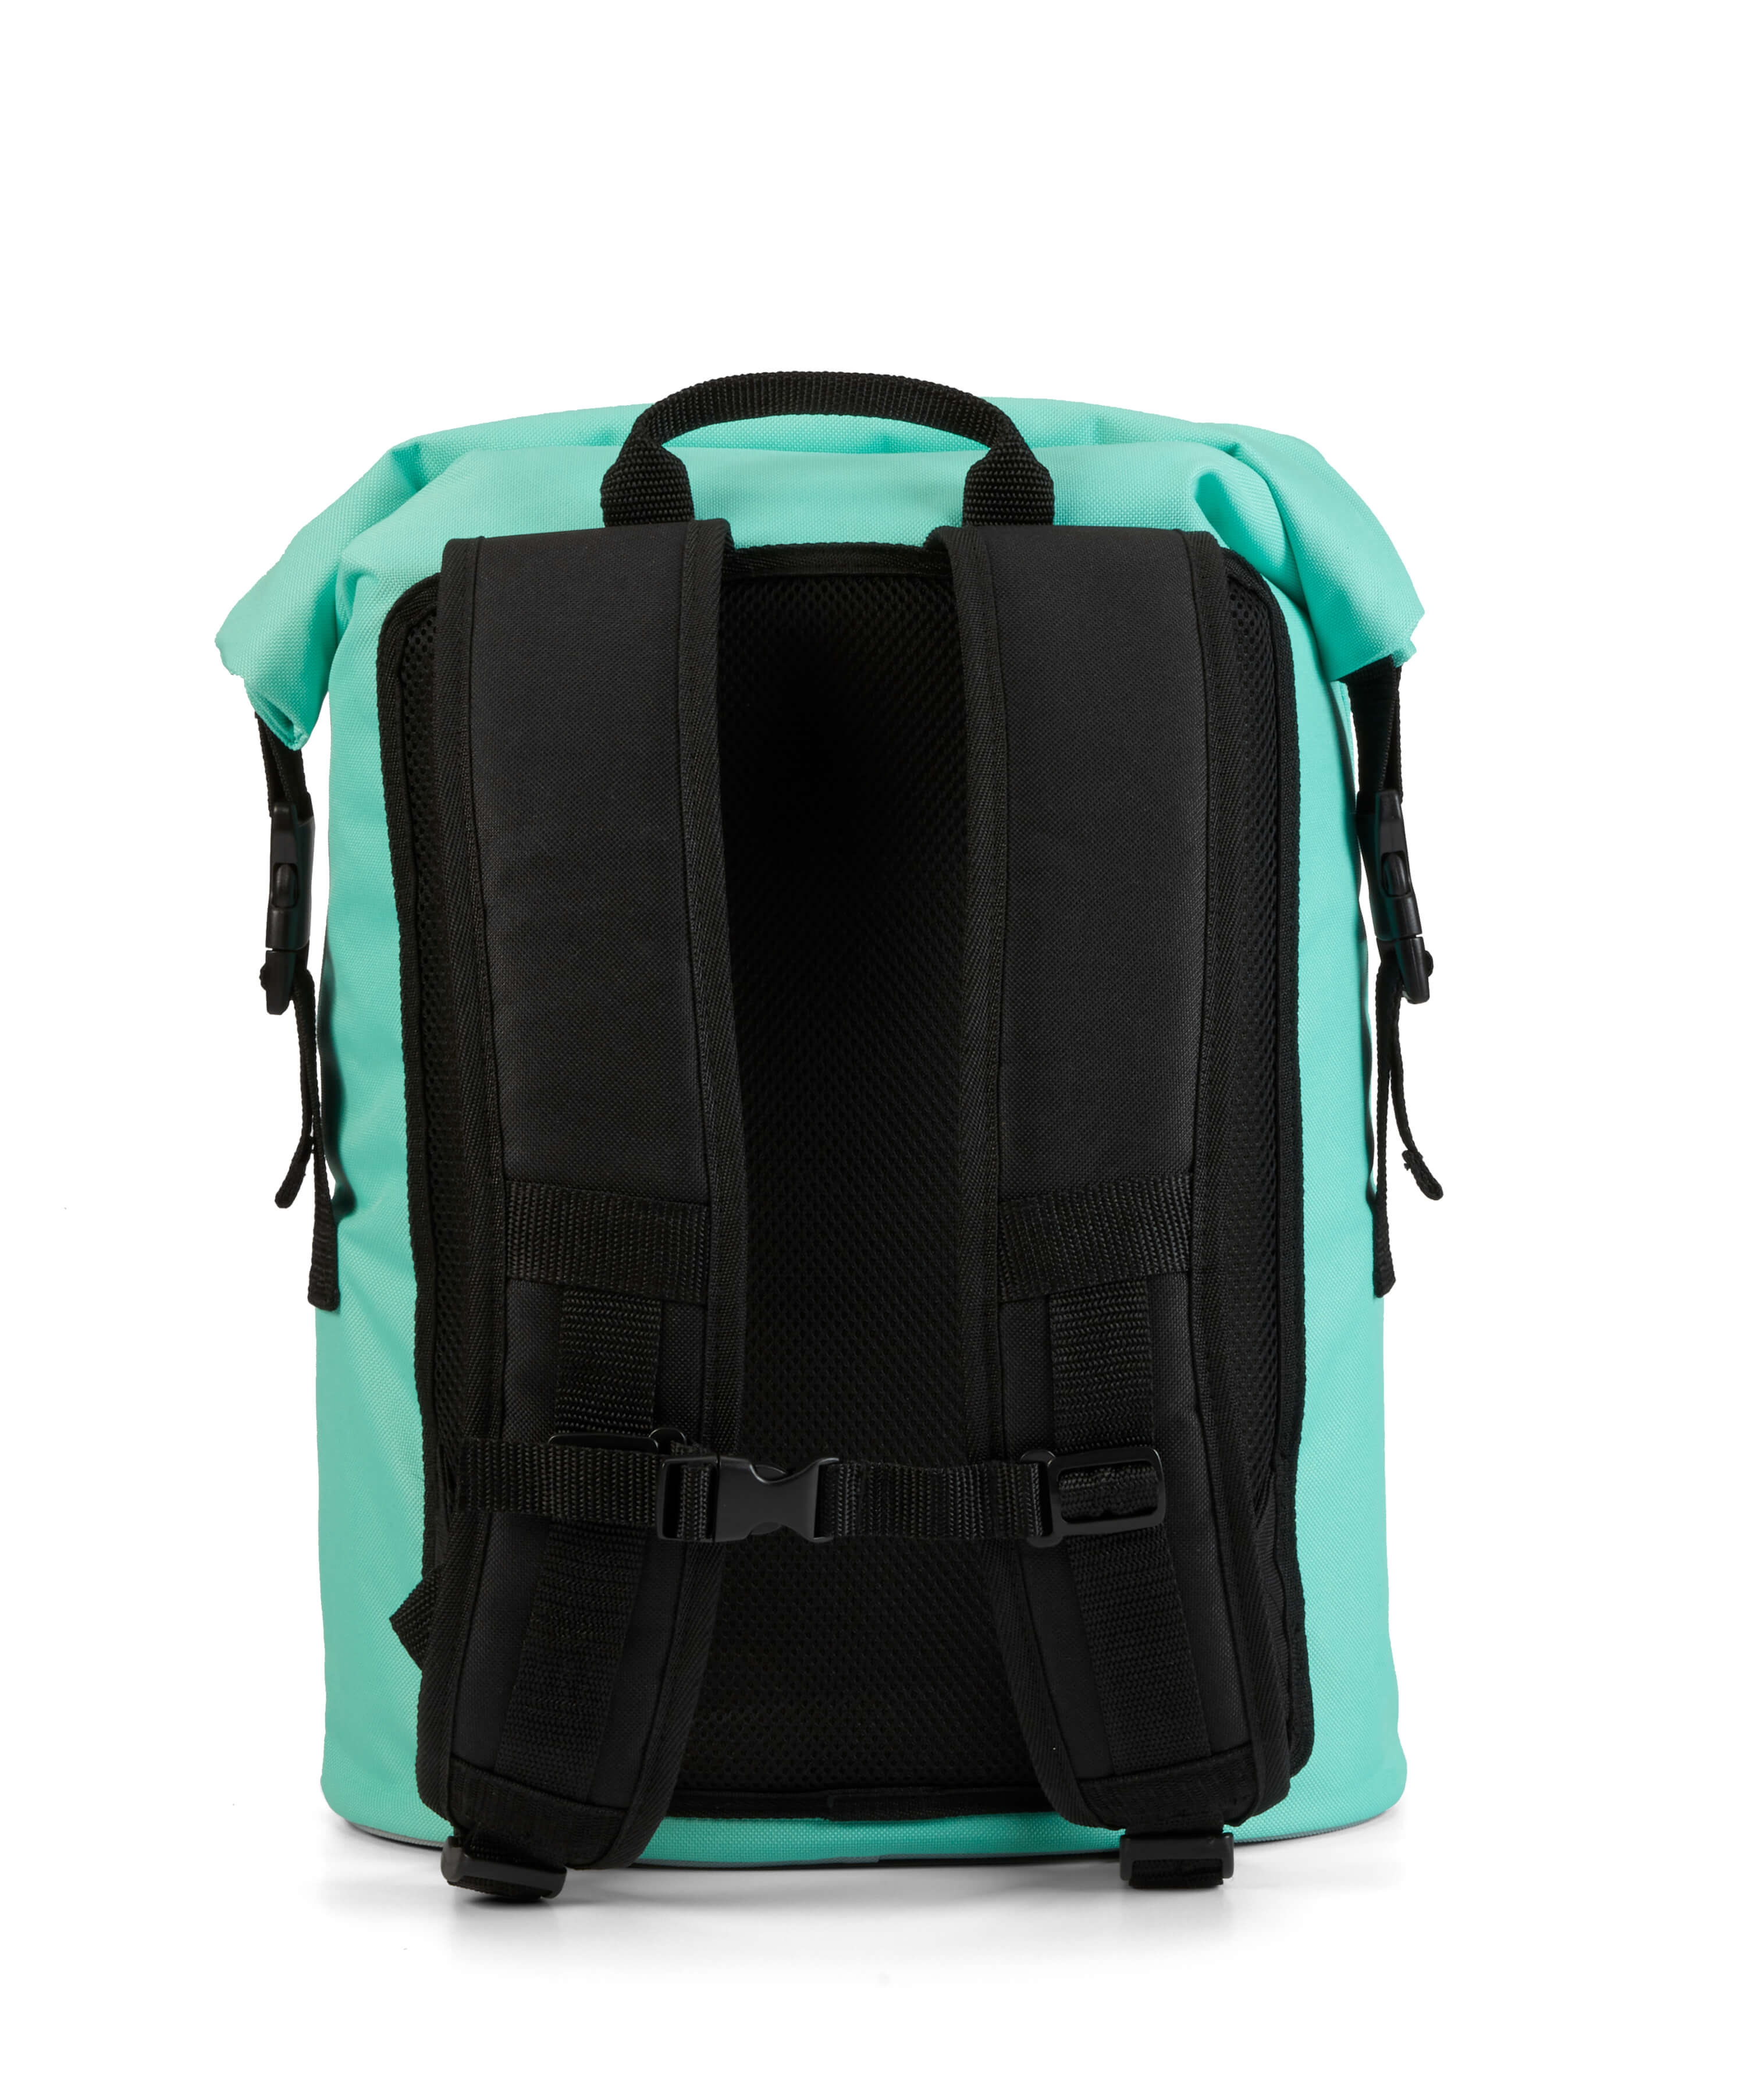 Roll Top Backpack Cooler